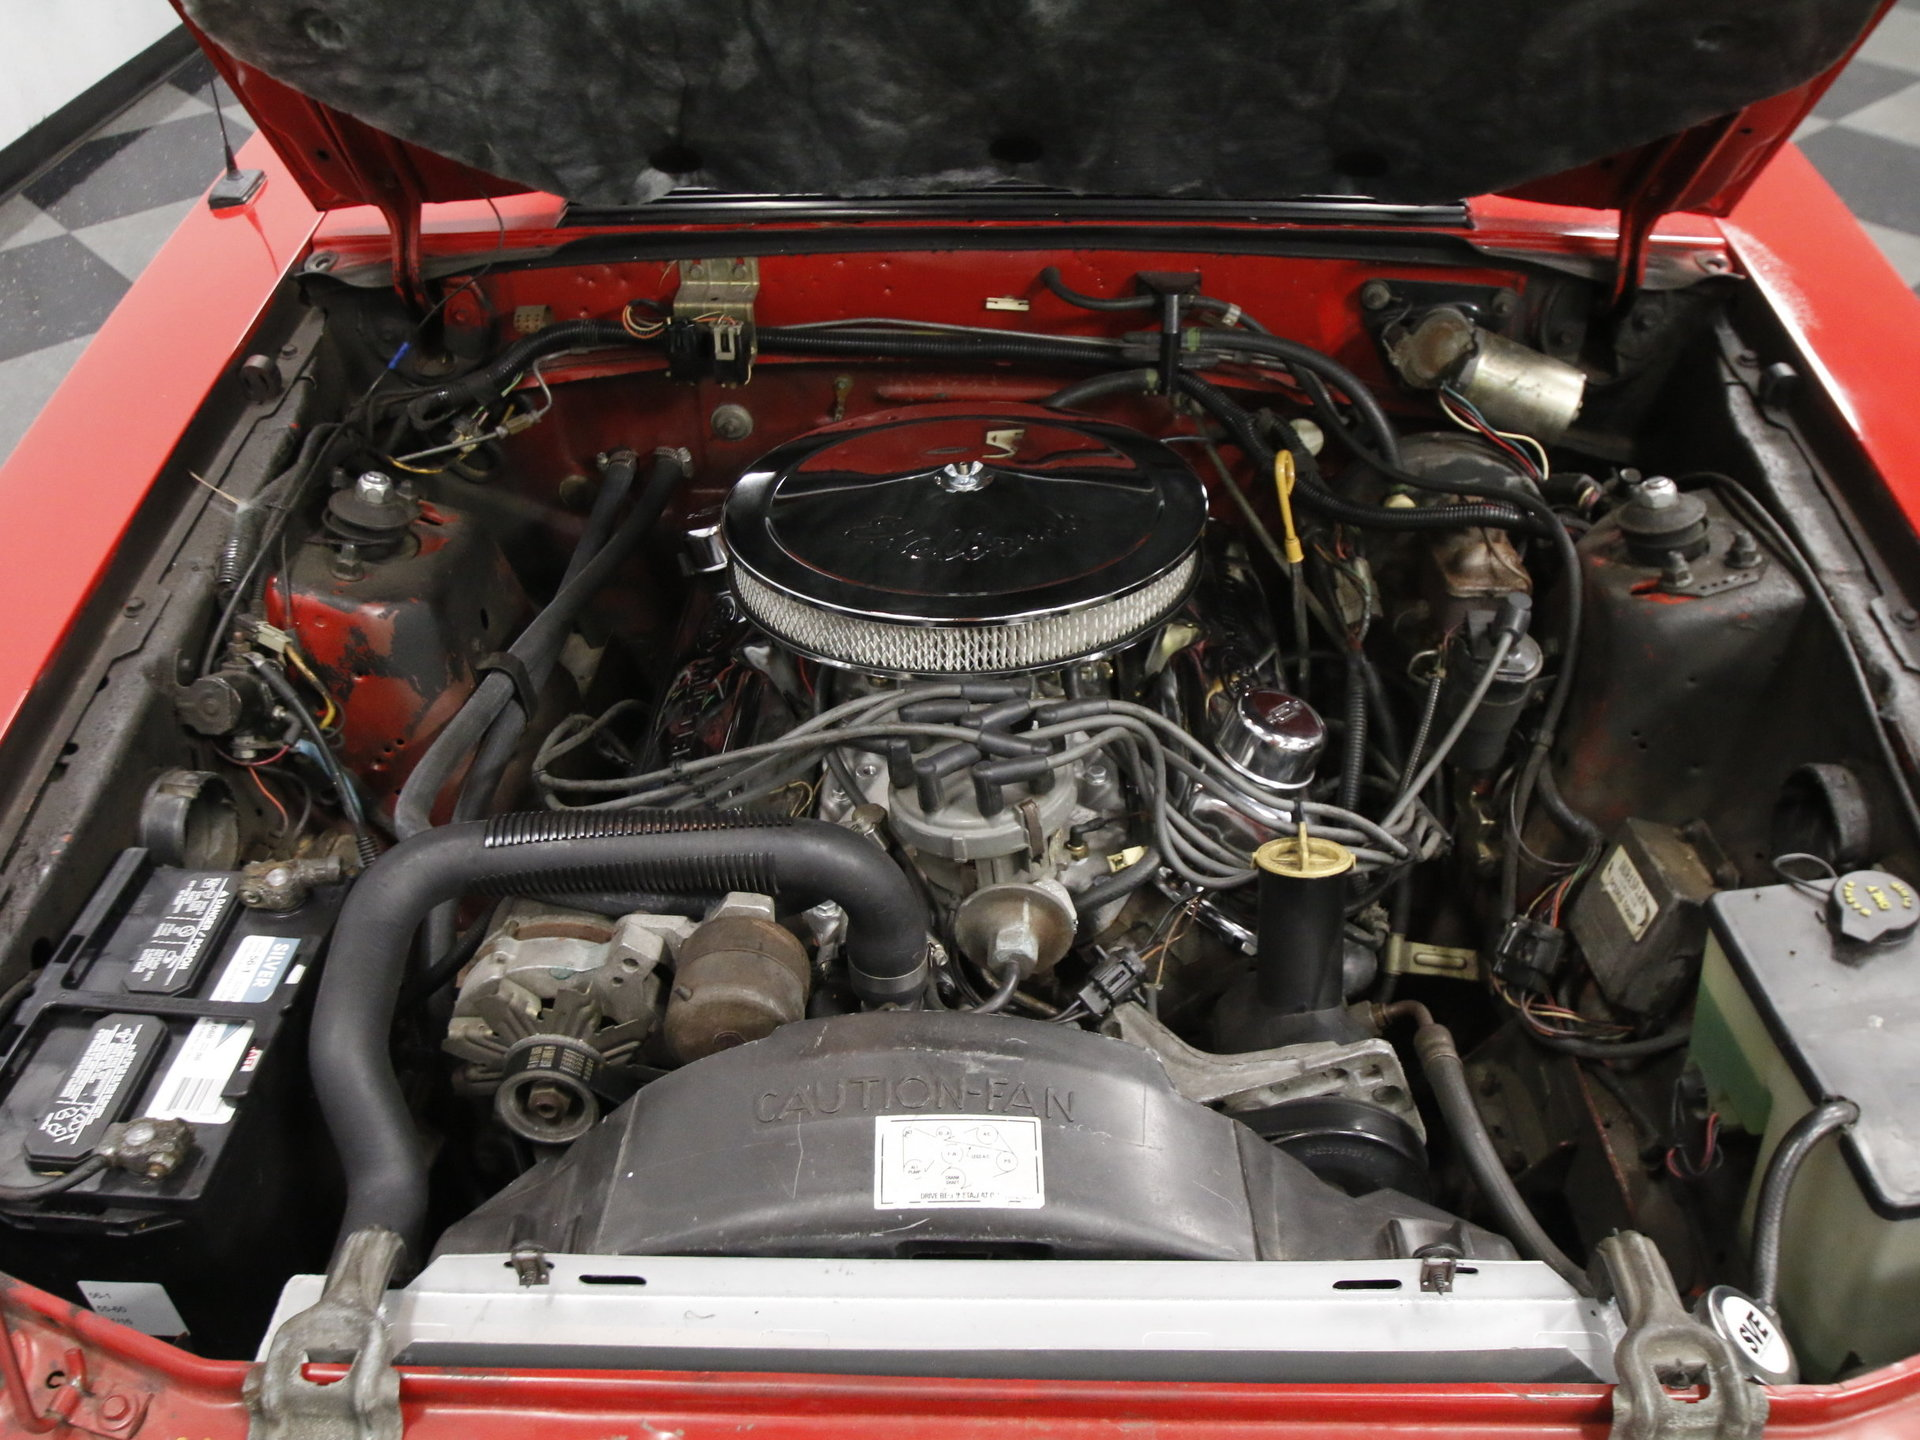 1983 Ford Mustang Streetside Classics The Nations Trusted Gt Engine View 360